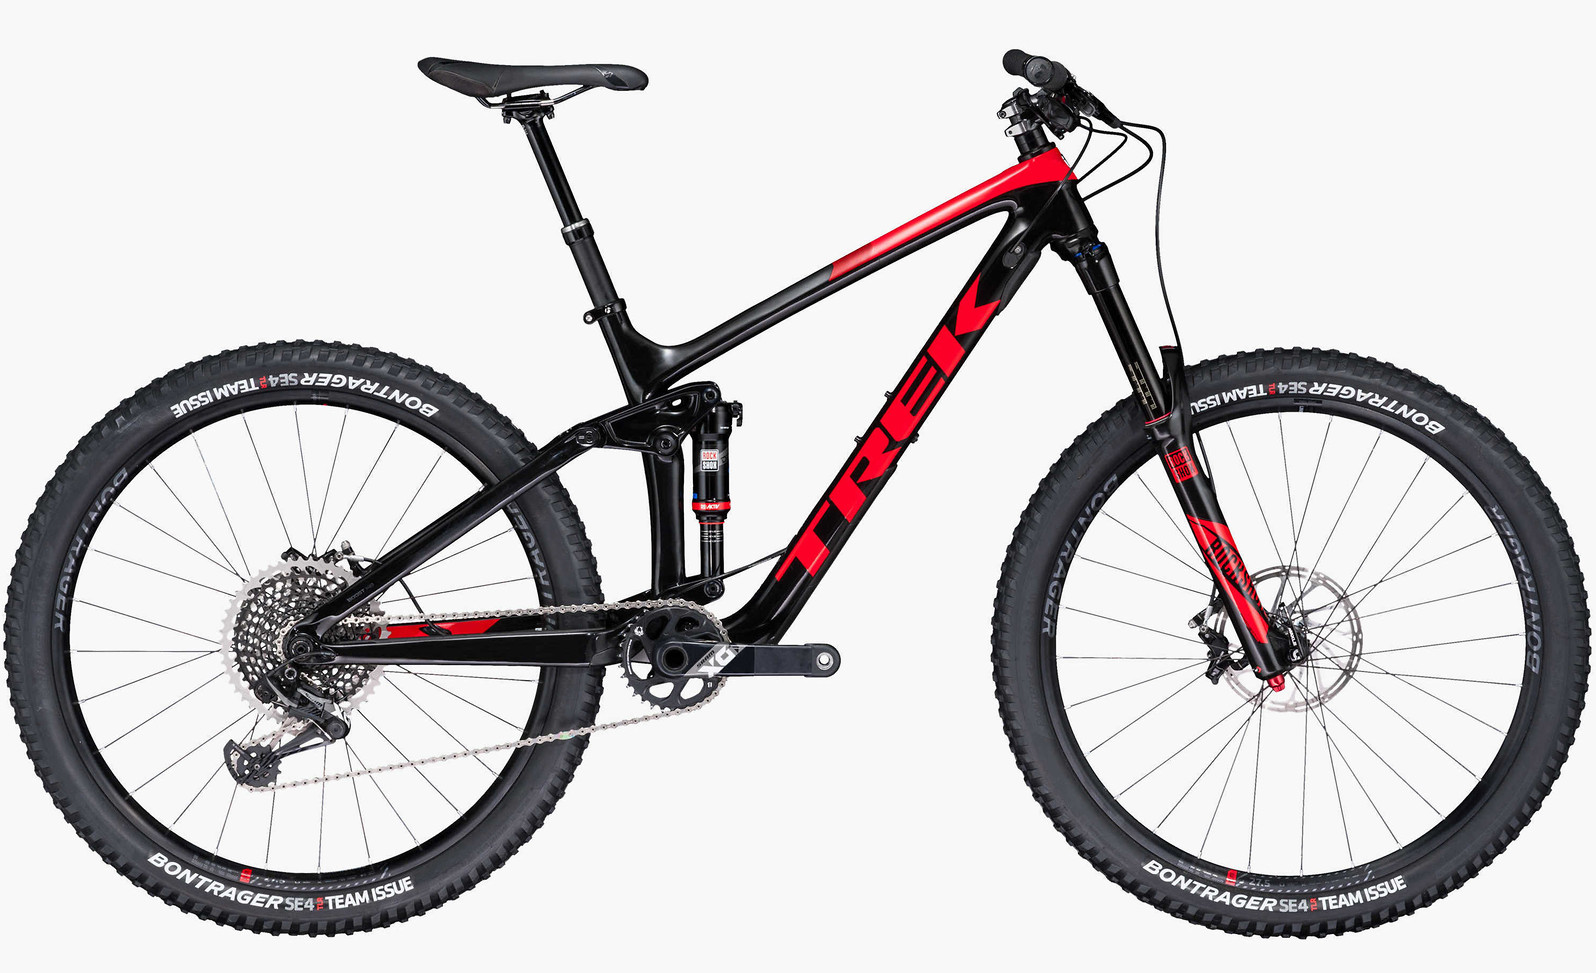 2017 Trek Remedy 9.9 Race Shop Limited Bike